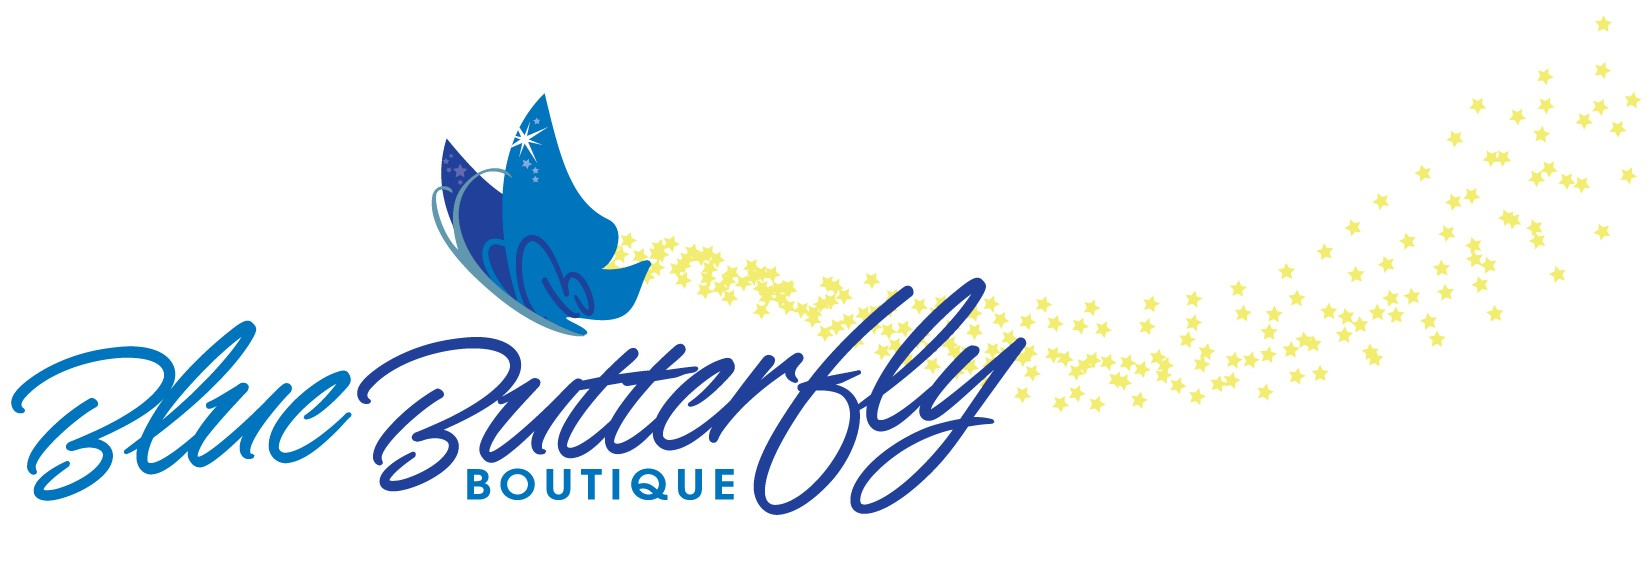 Blue Butterfly Boutique